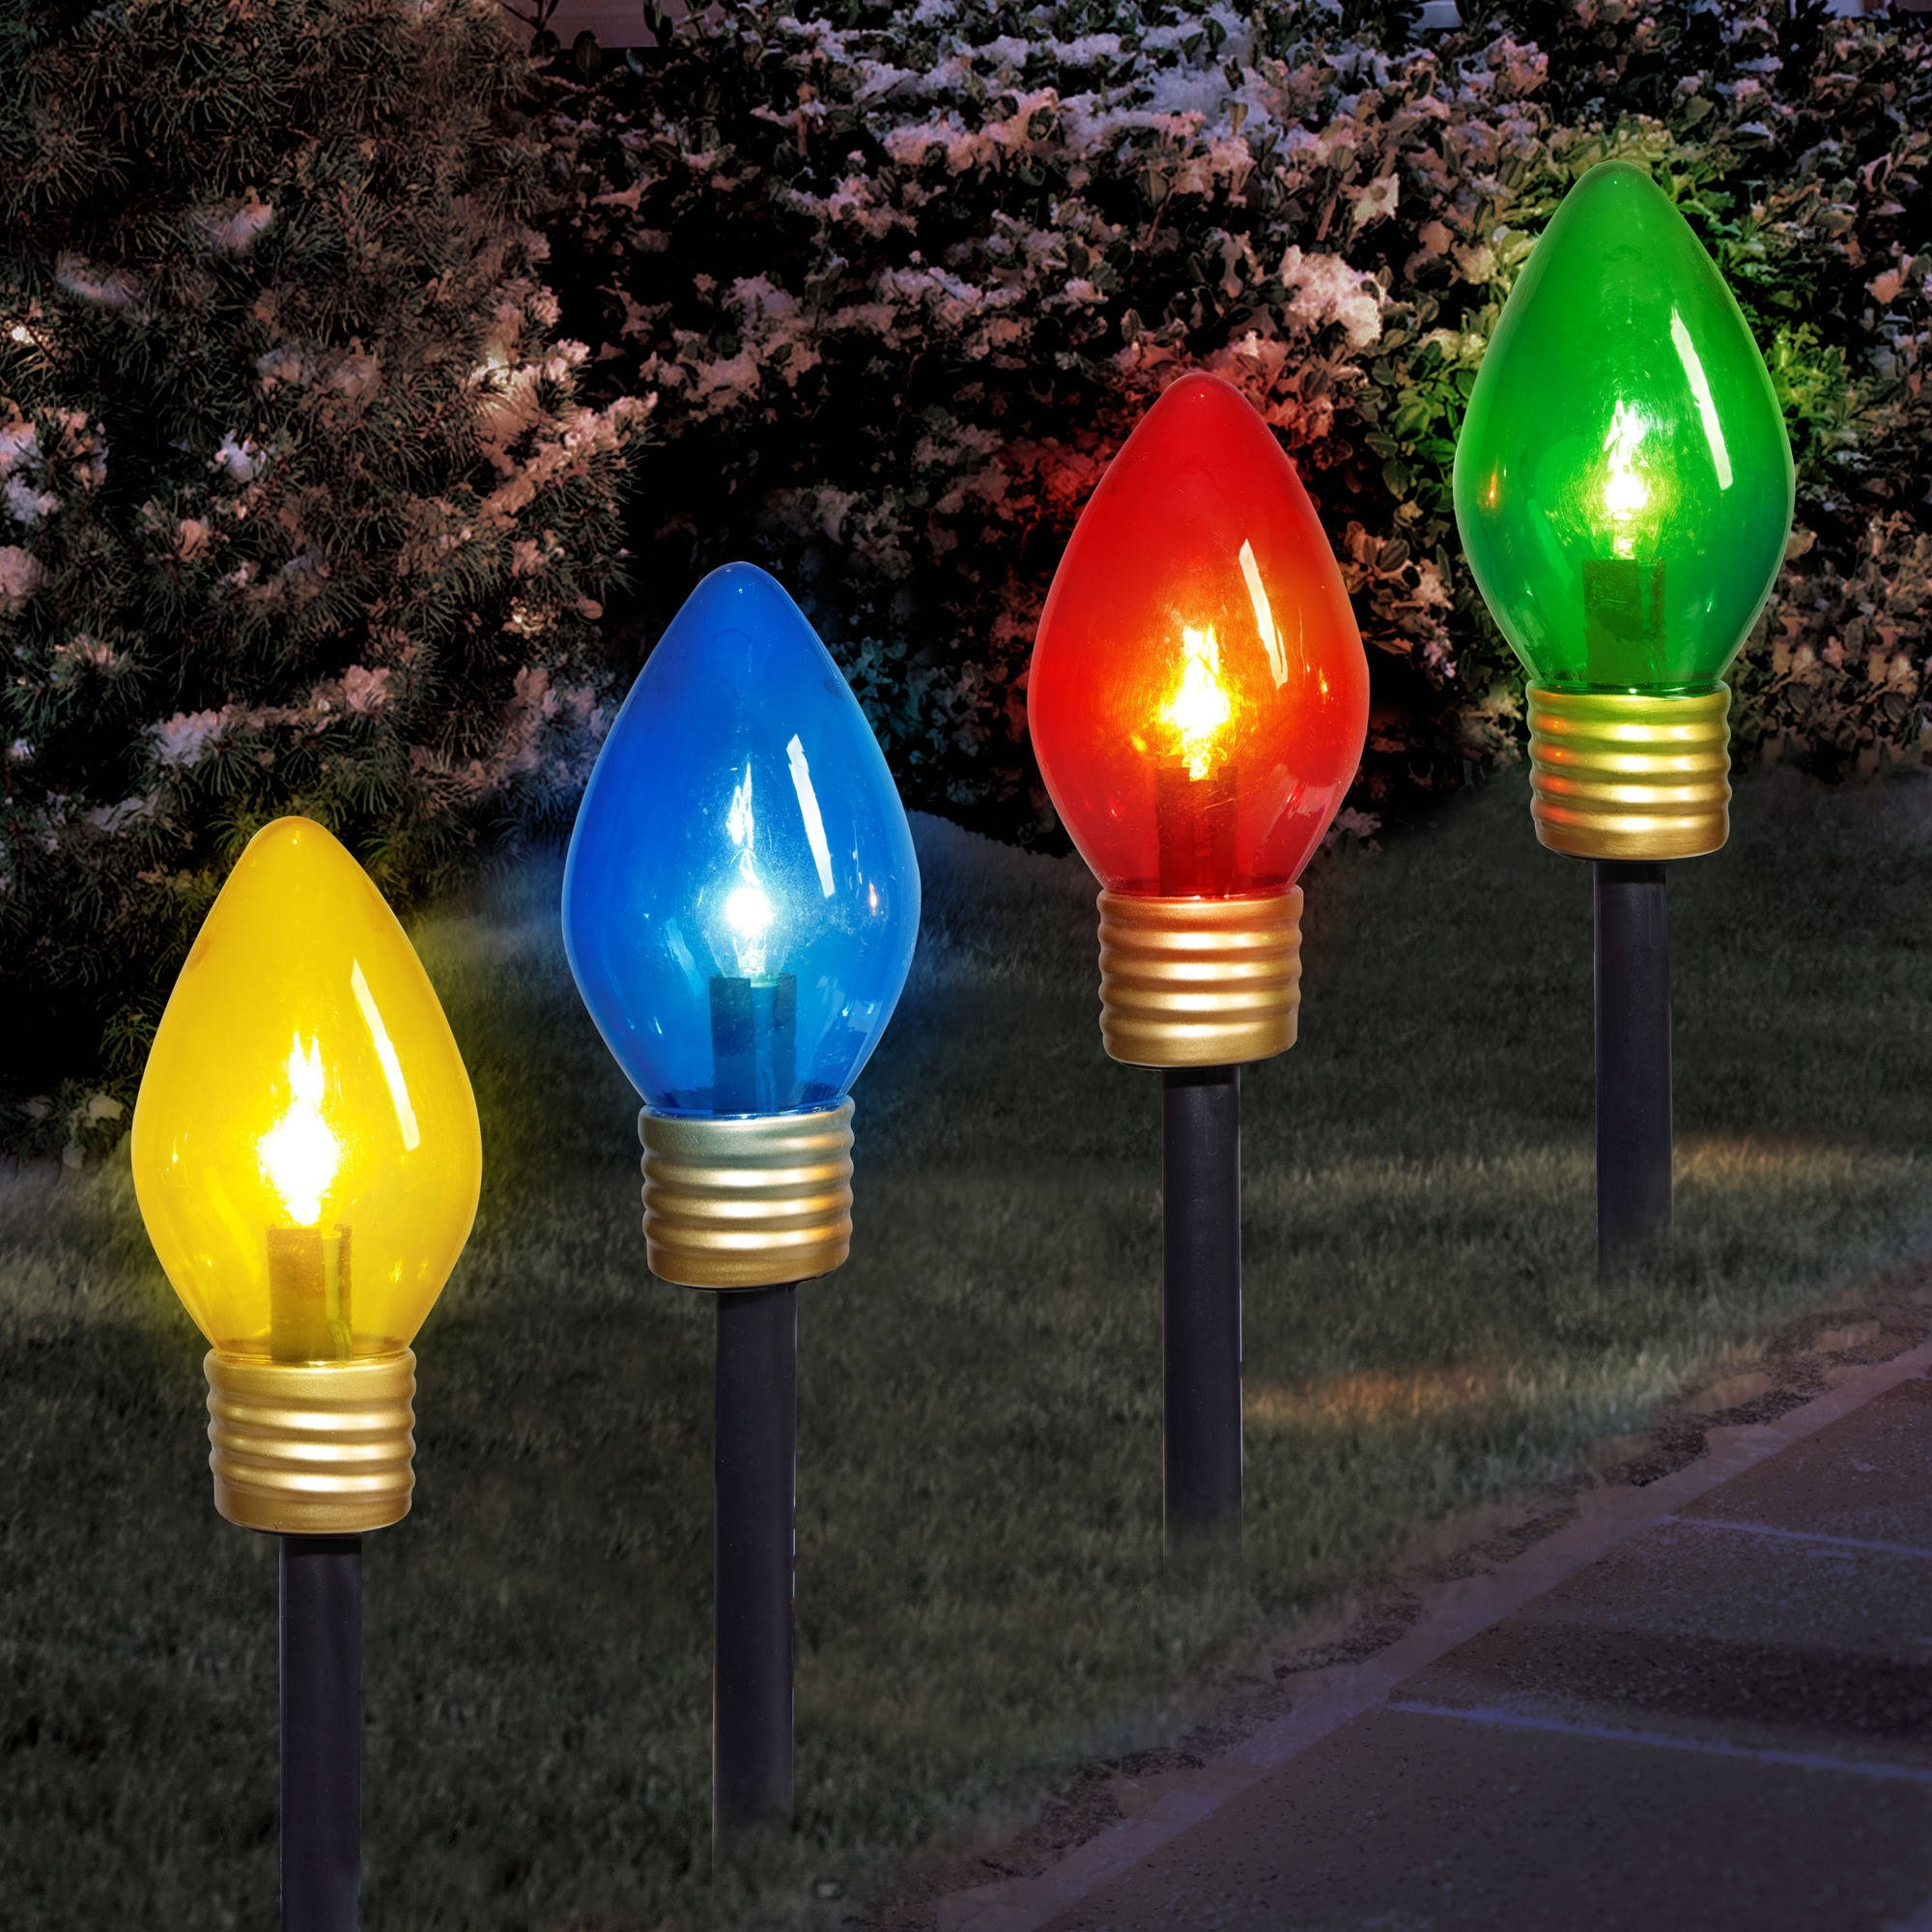 Holiday Time Christmas Lights Jumbo C9 Lighted Lawn Stake, 4-Piece throughout Jumbo Outdoor Lanterns (Image 9 of 20)